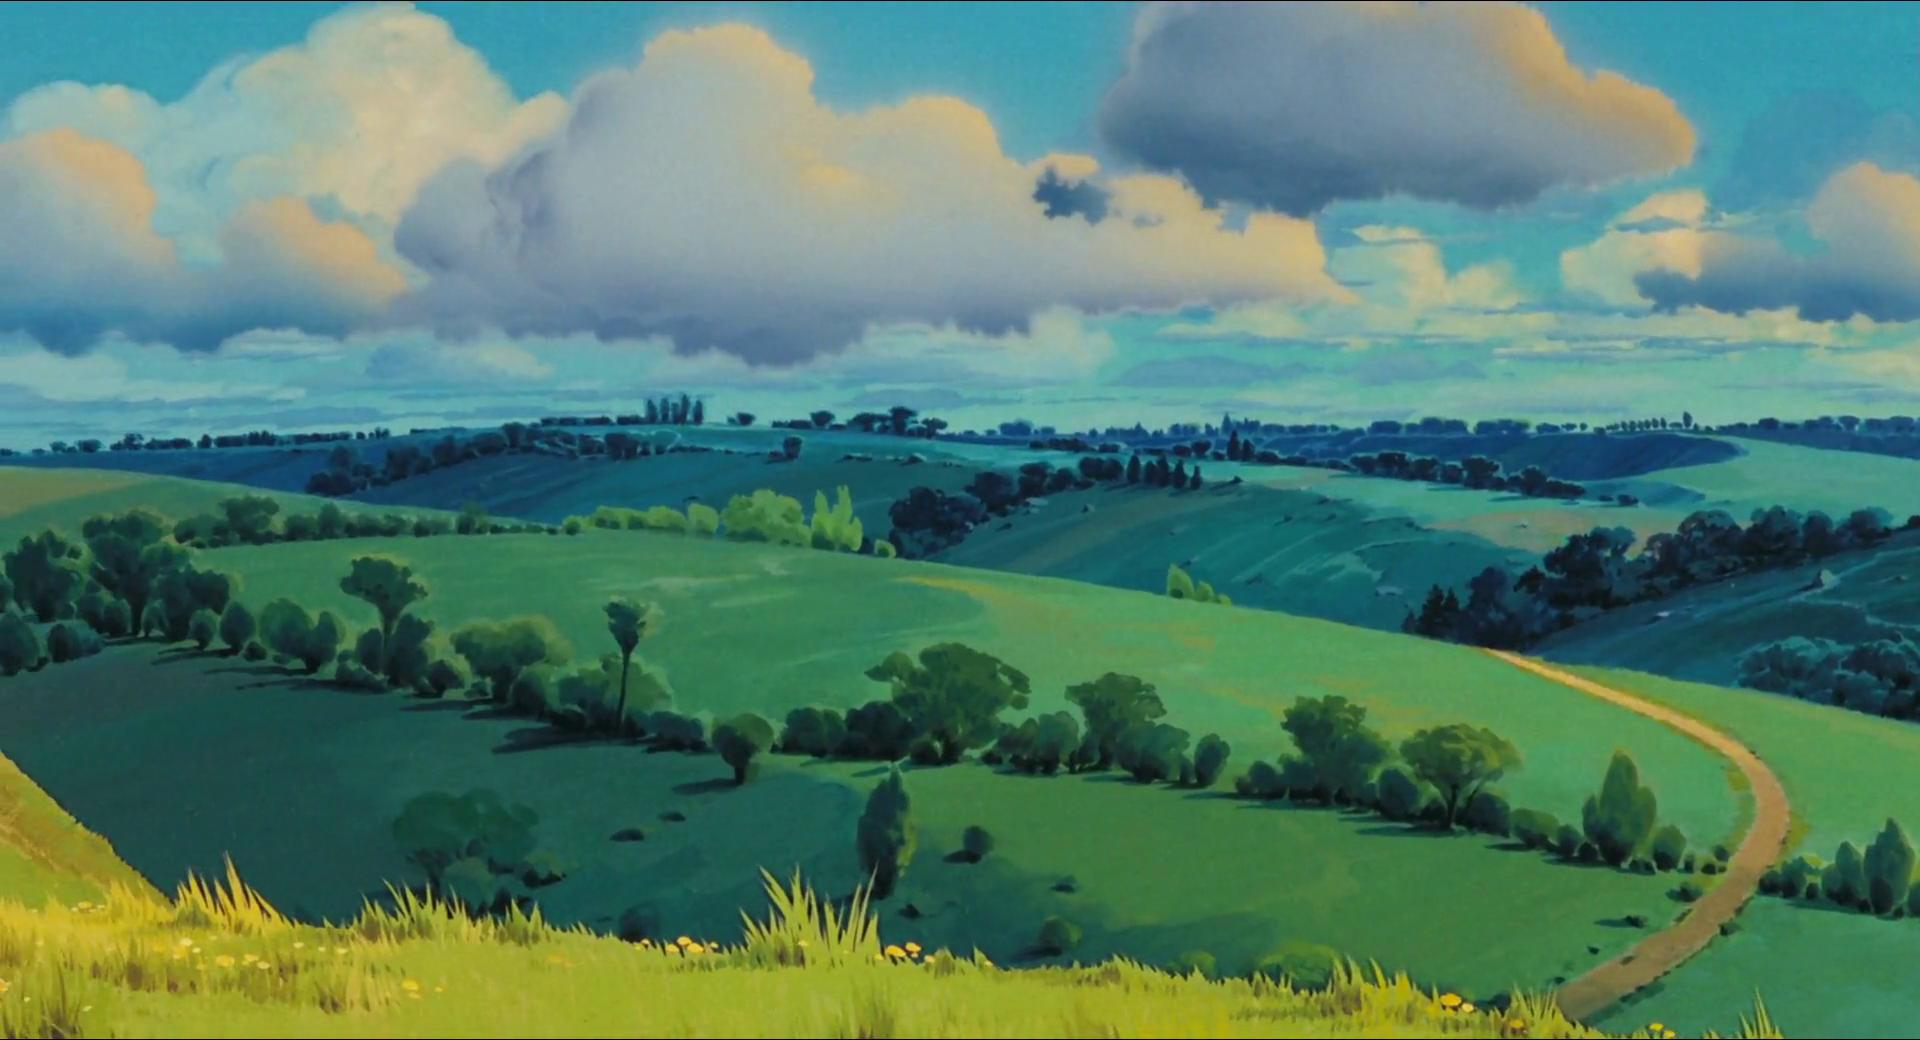 High Res Anime Wallpaper Wallpaper Wednesday More Ghibli Wallpapers For You